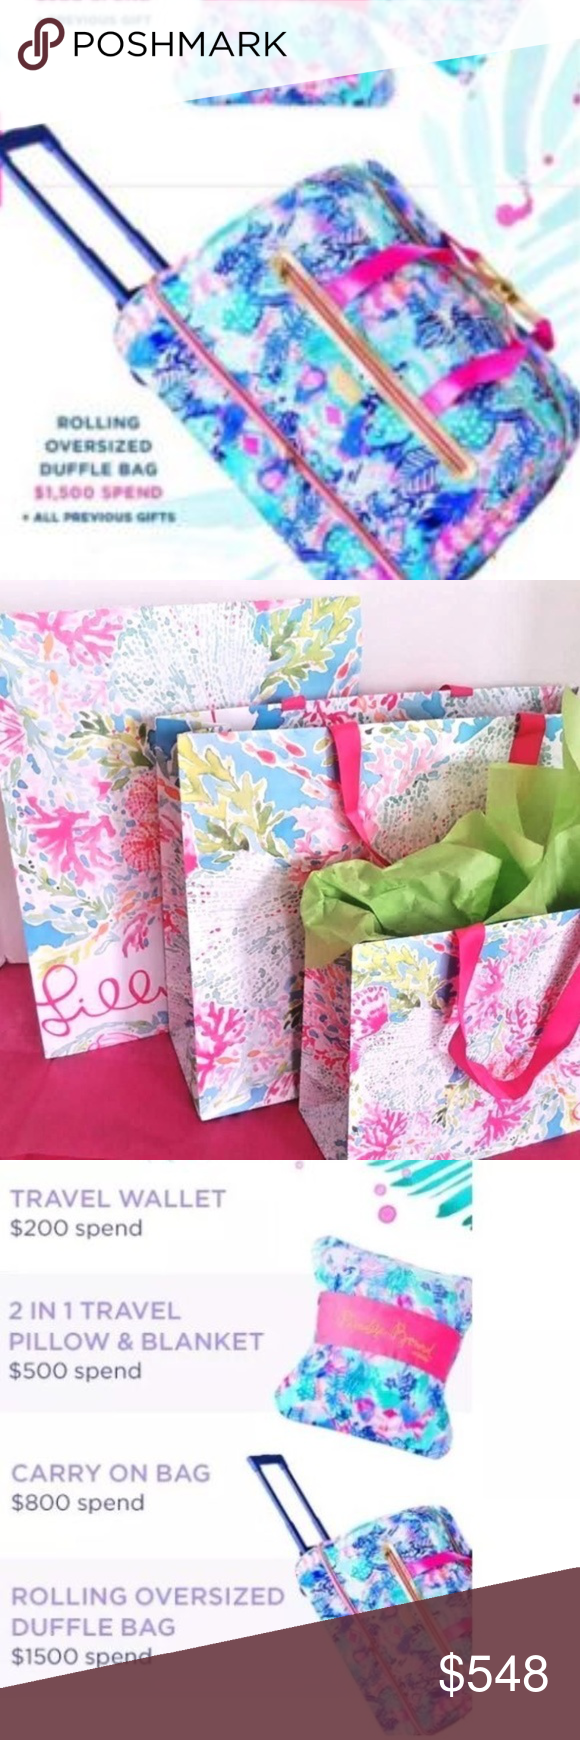 66de90cd63 Lilly Pulitzer Rolling Oversiz Duffel Bag Suitcase Lilly Pulitzer Multi  QUILL OUT ROLLING OVERSIZED DUFFEL BAG